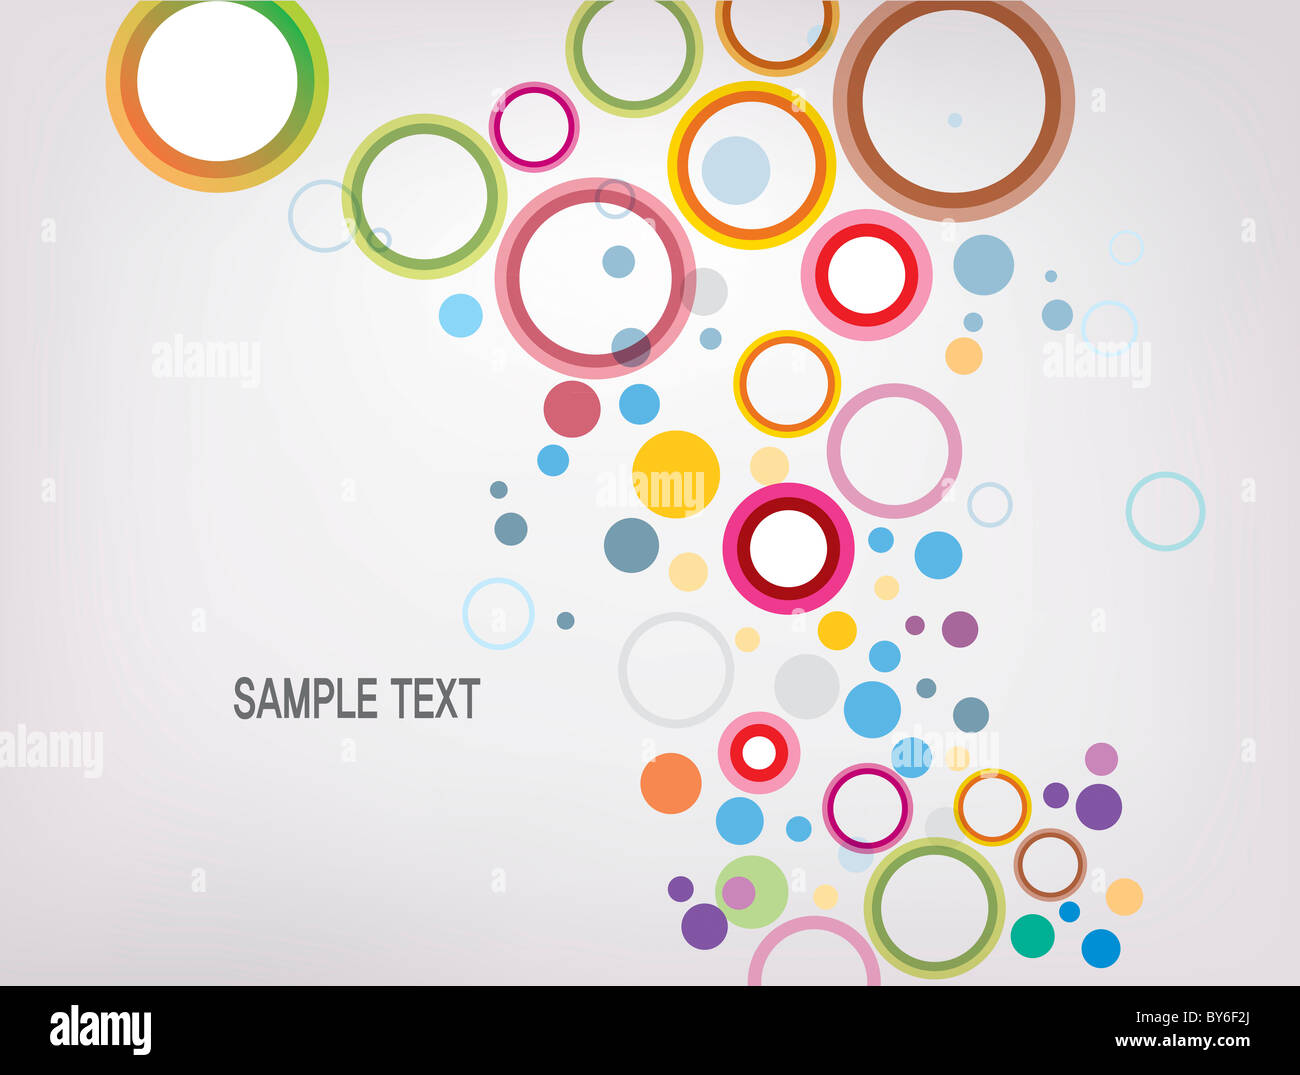 drop shaped illustration background Stock Photo